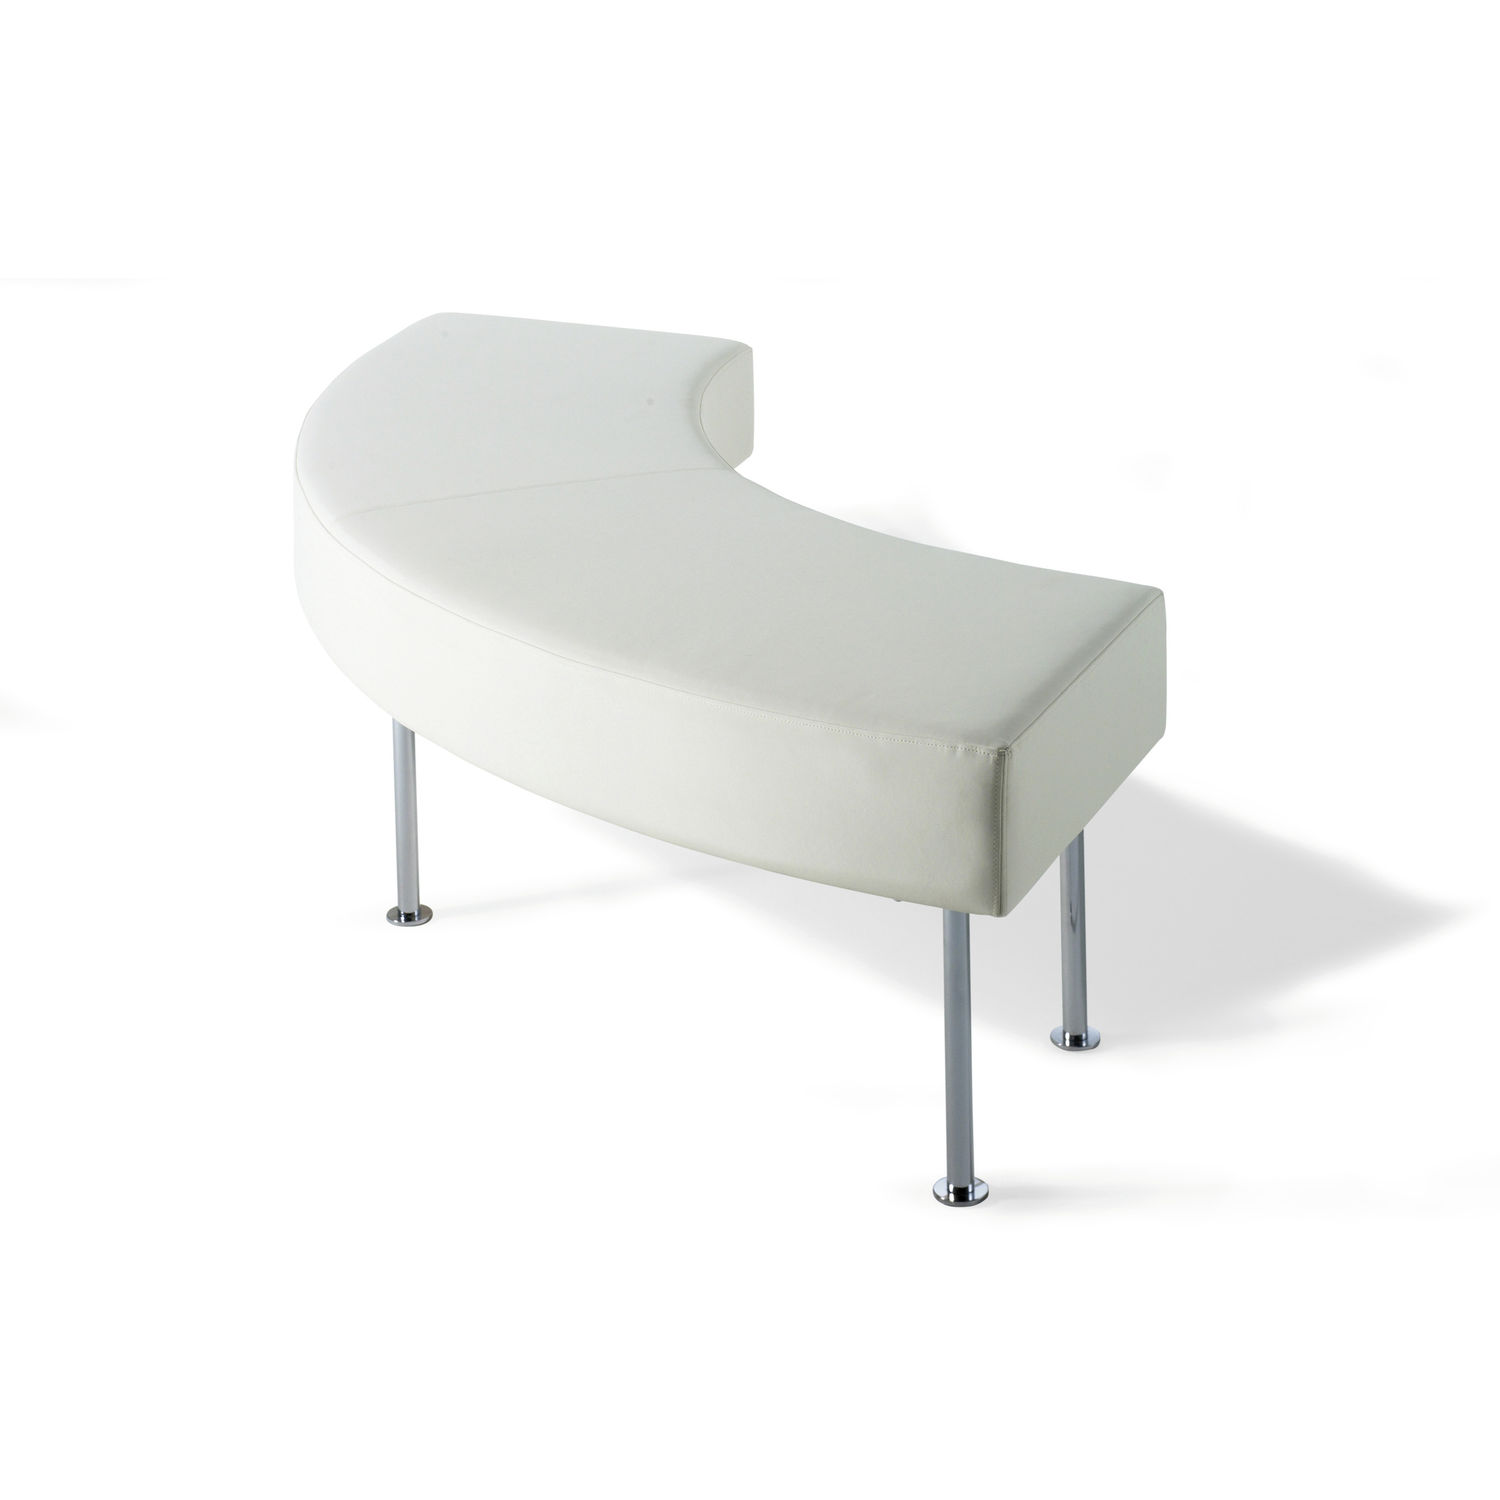 modular upholstered bench  contemporary  leather  commercial  -  modular upholstered bench  contemporary  leather  commercial longoby komplot design materia